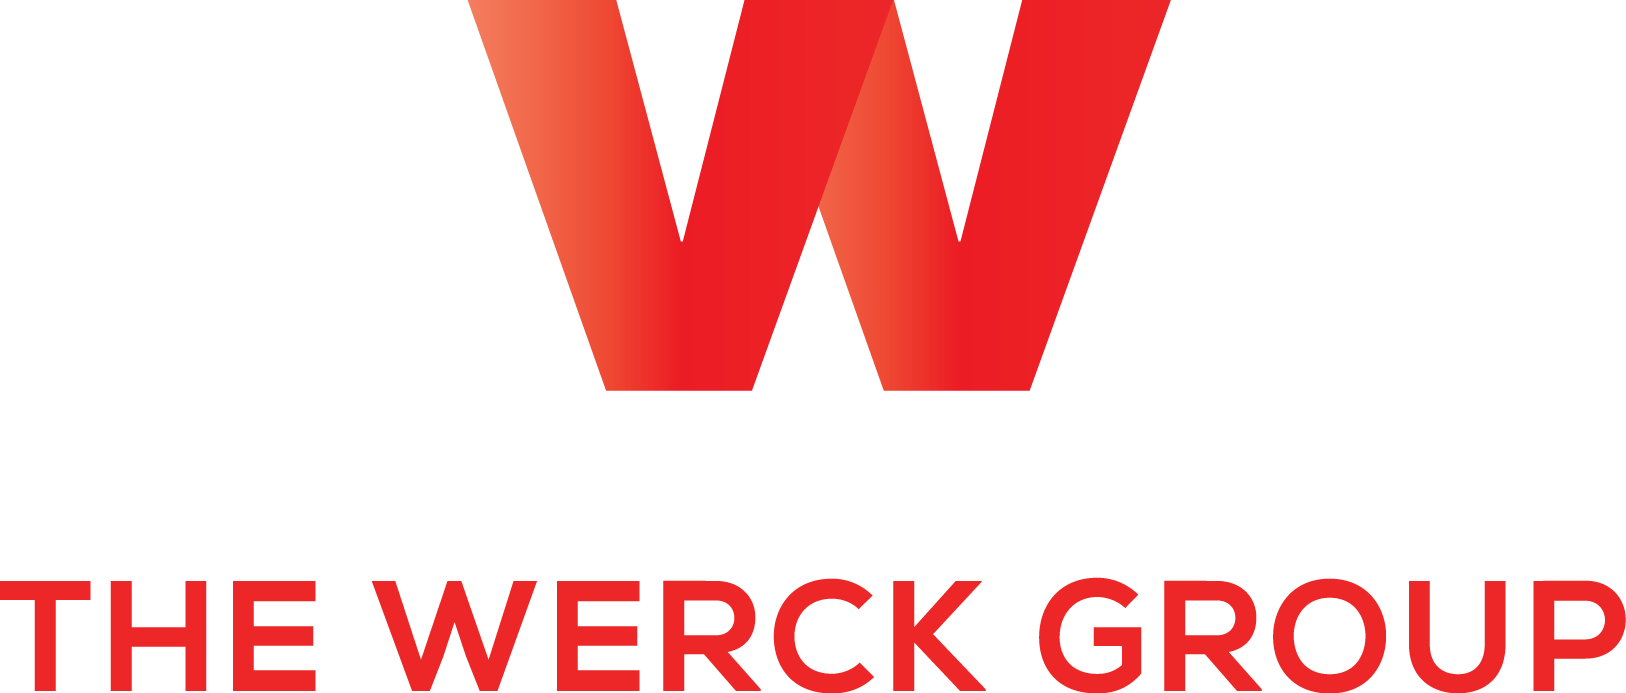 THE_WERCK_GROUP_LOGO.png